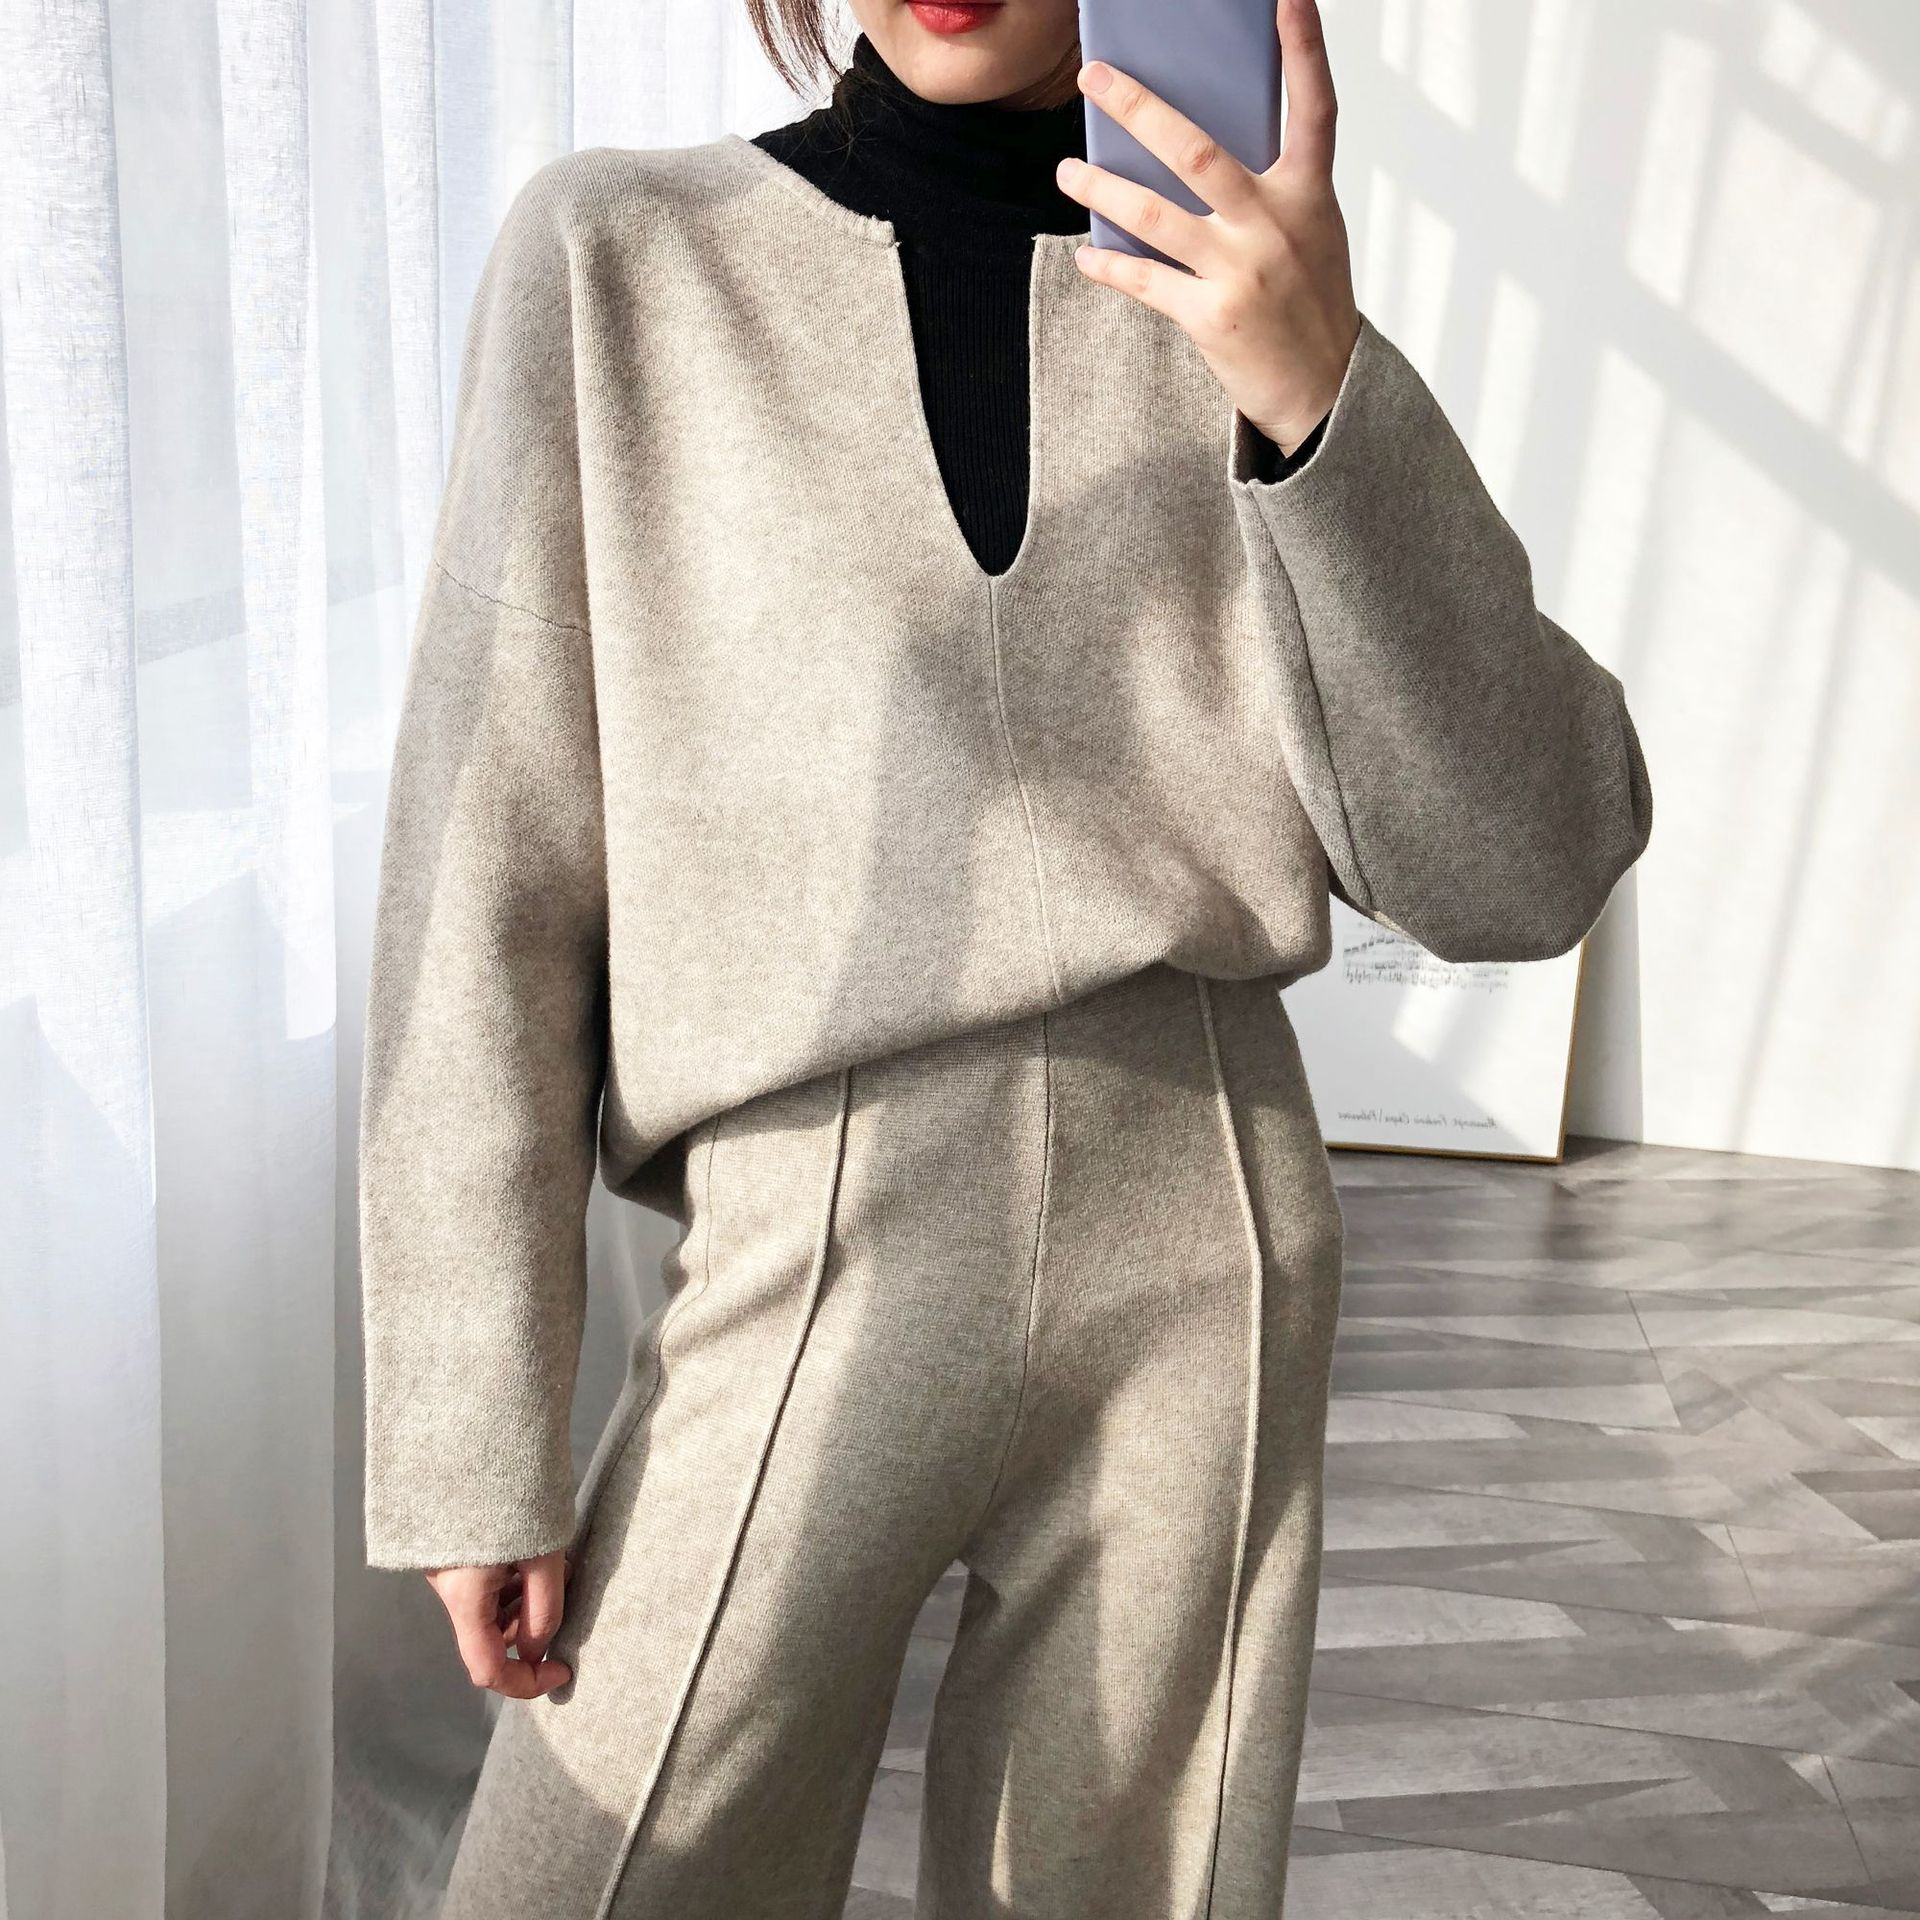 V Neck Winter Woman Sweater Knitted Pullovers Long Sleeve Loose Vintage Sweater Female Jumper Knitwear  Korean Style SA059S50(China)